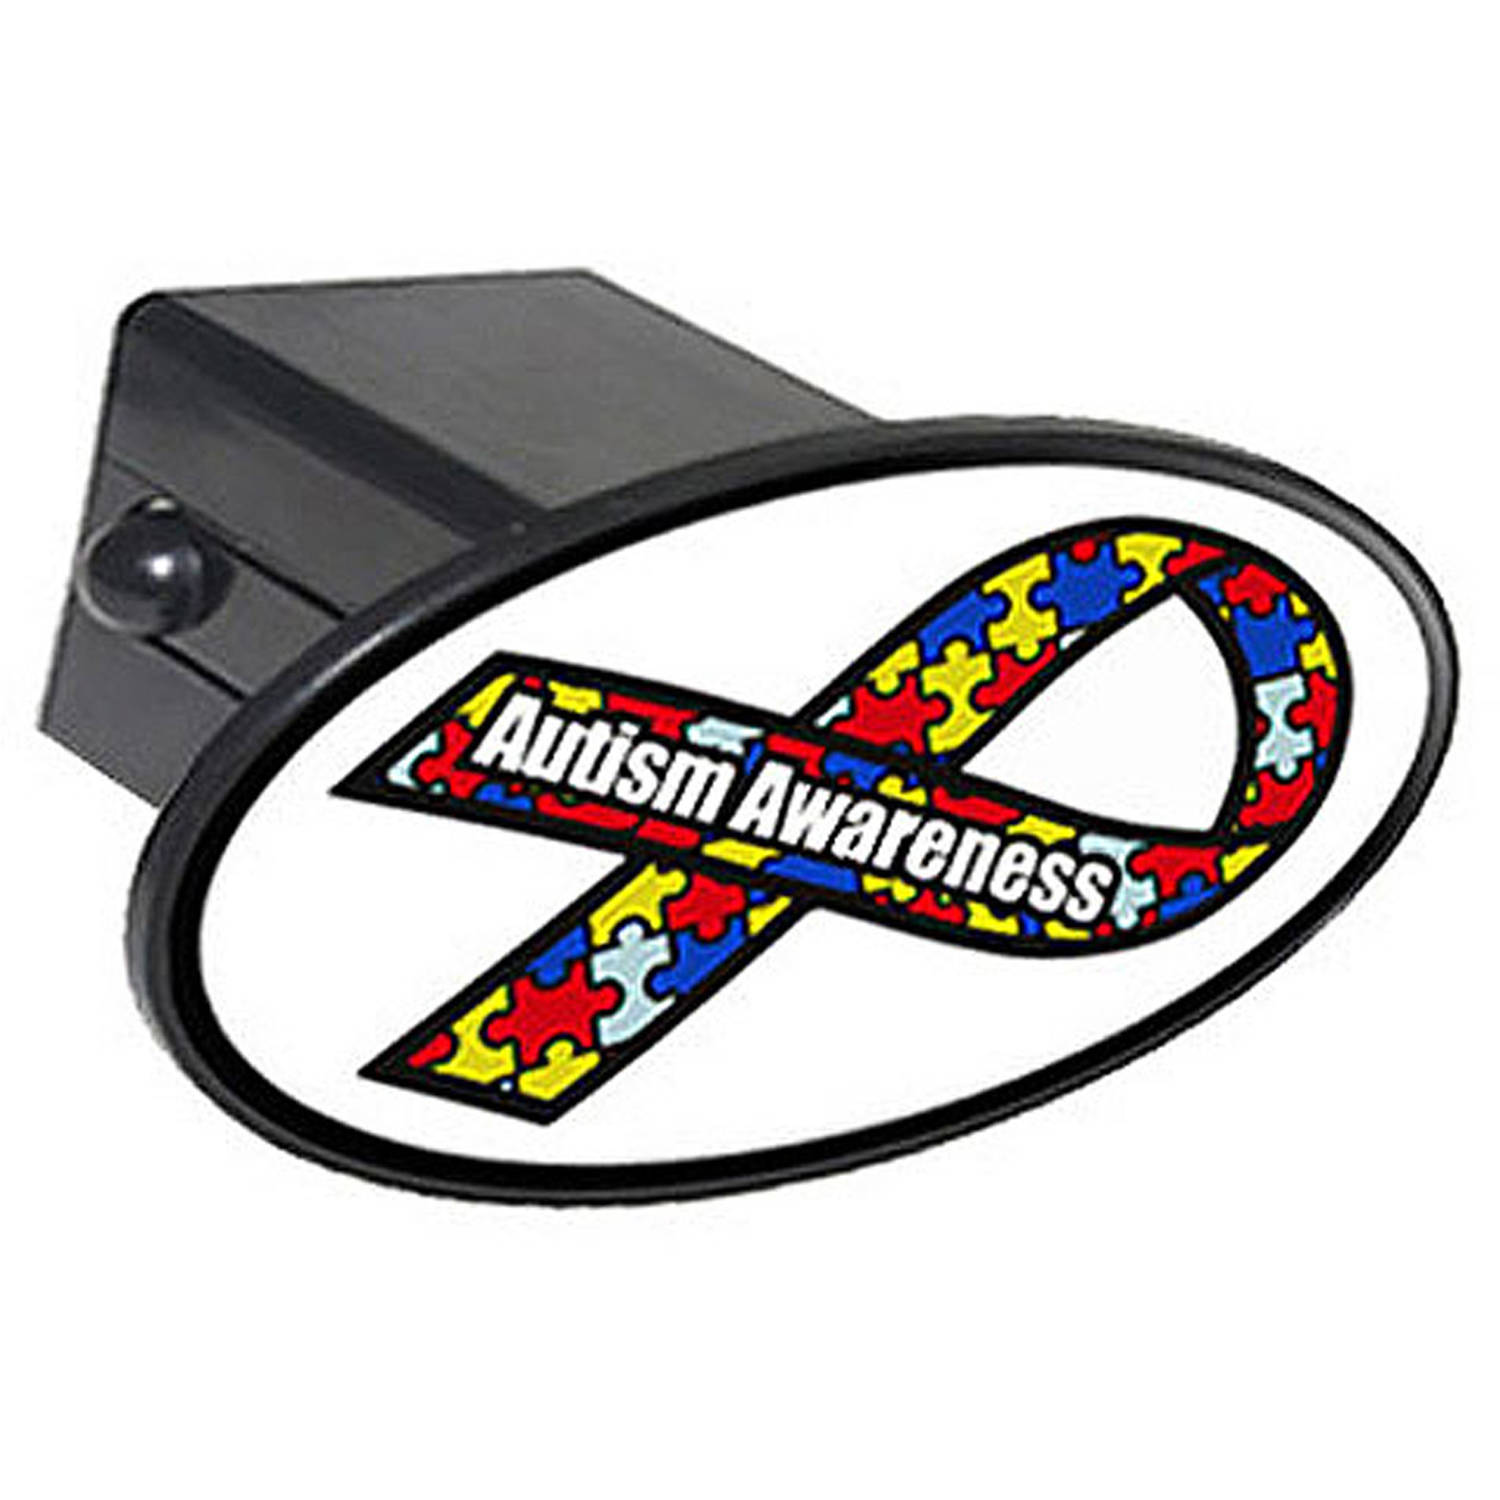 "Autism Awareness Ribbon 2"" Oval Tow Trailer Hitch Cover Plug Insert"